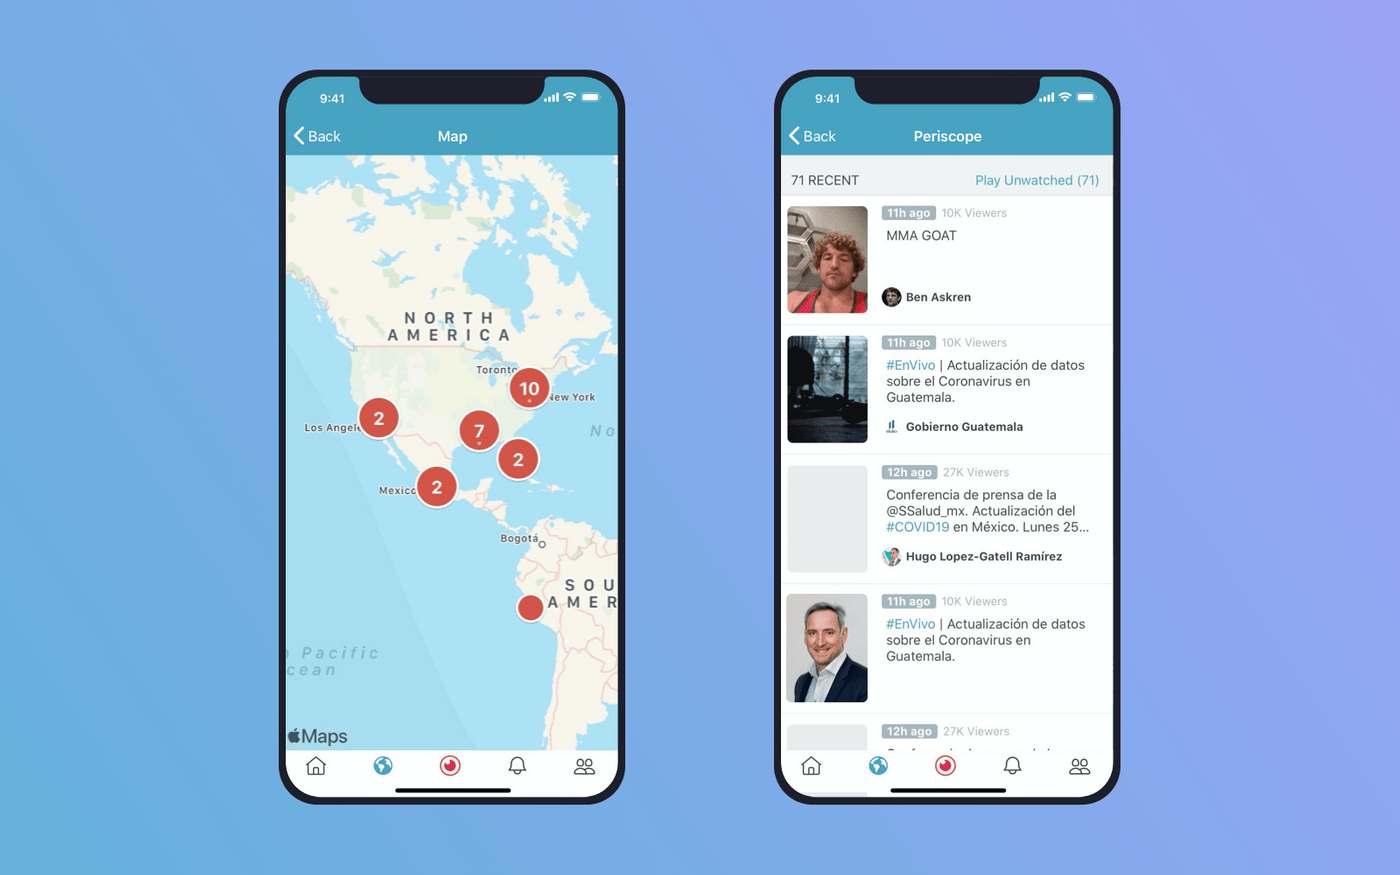 Screens with a list of broadcasts in Periscope